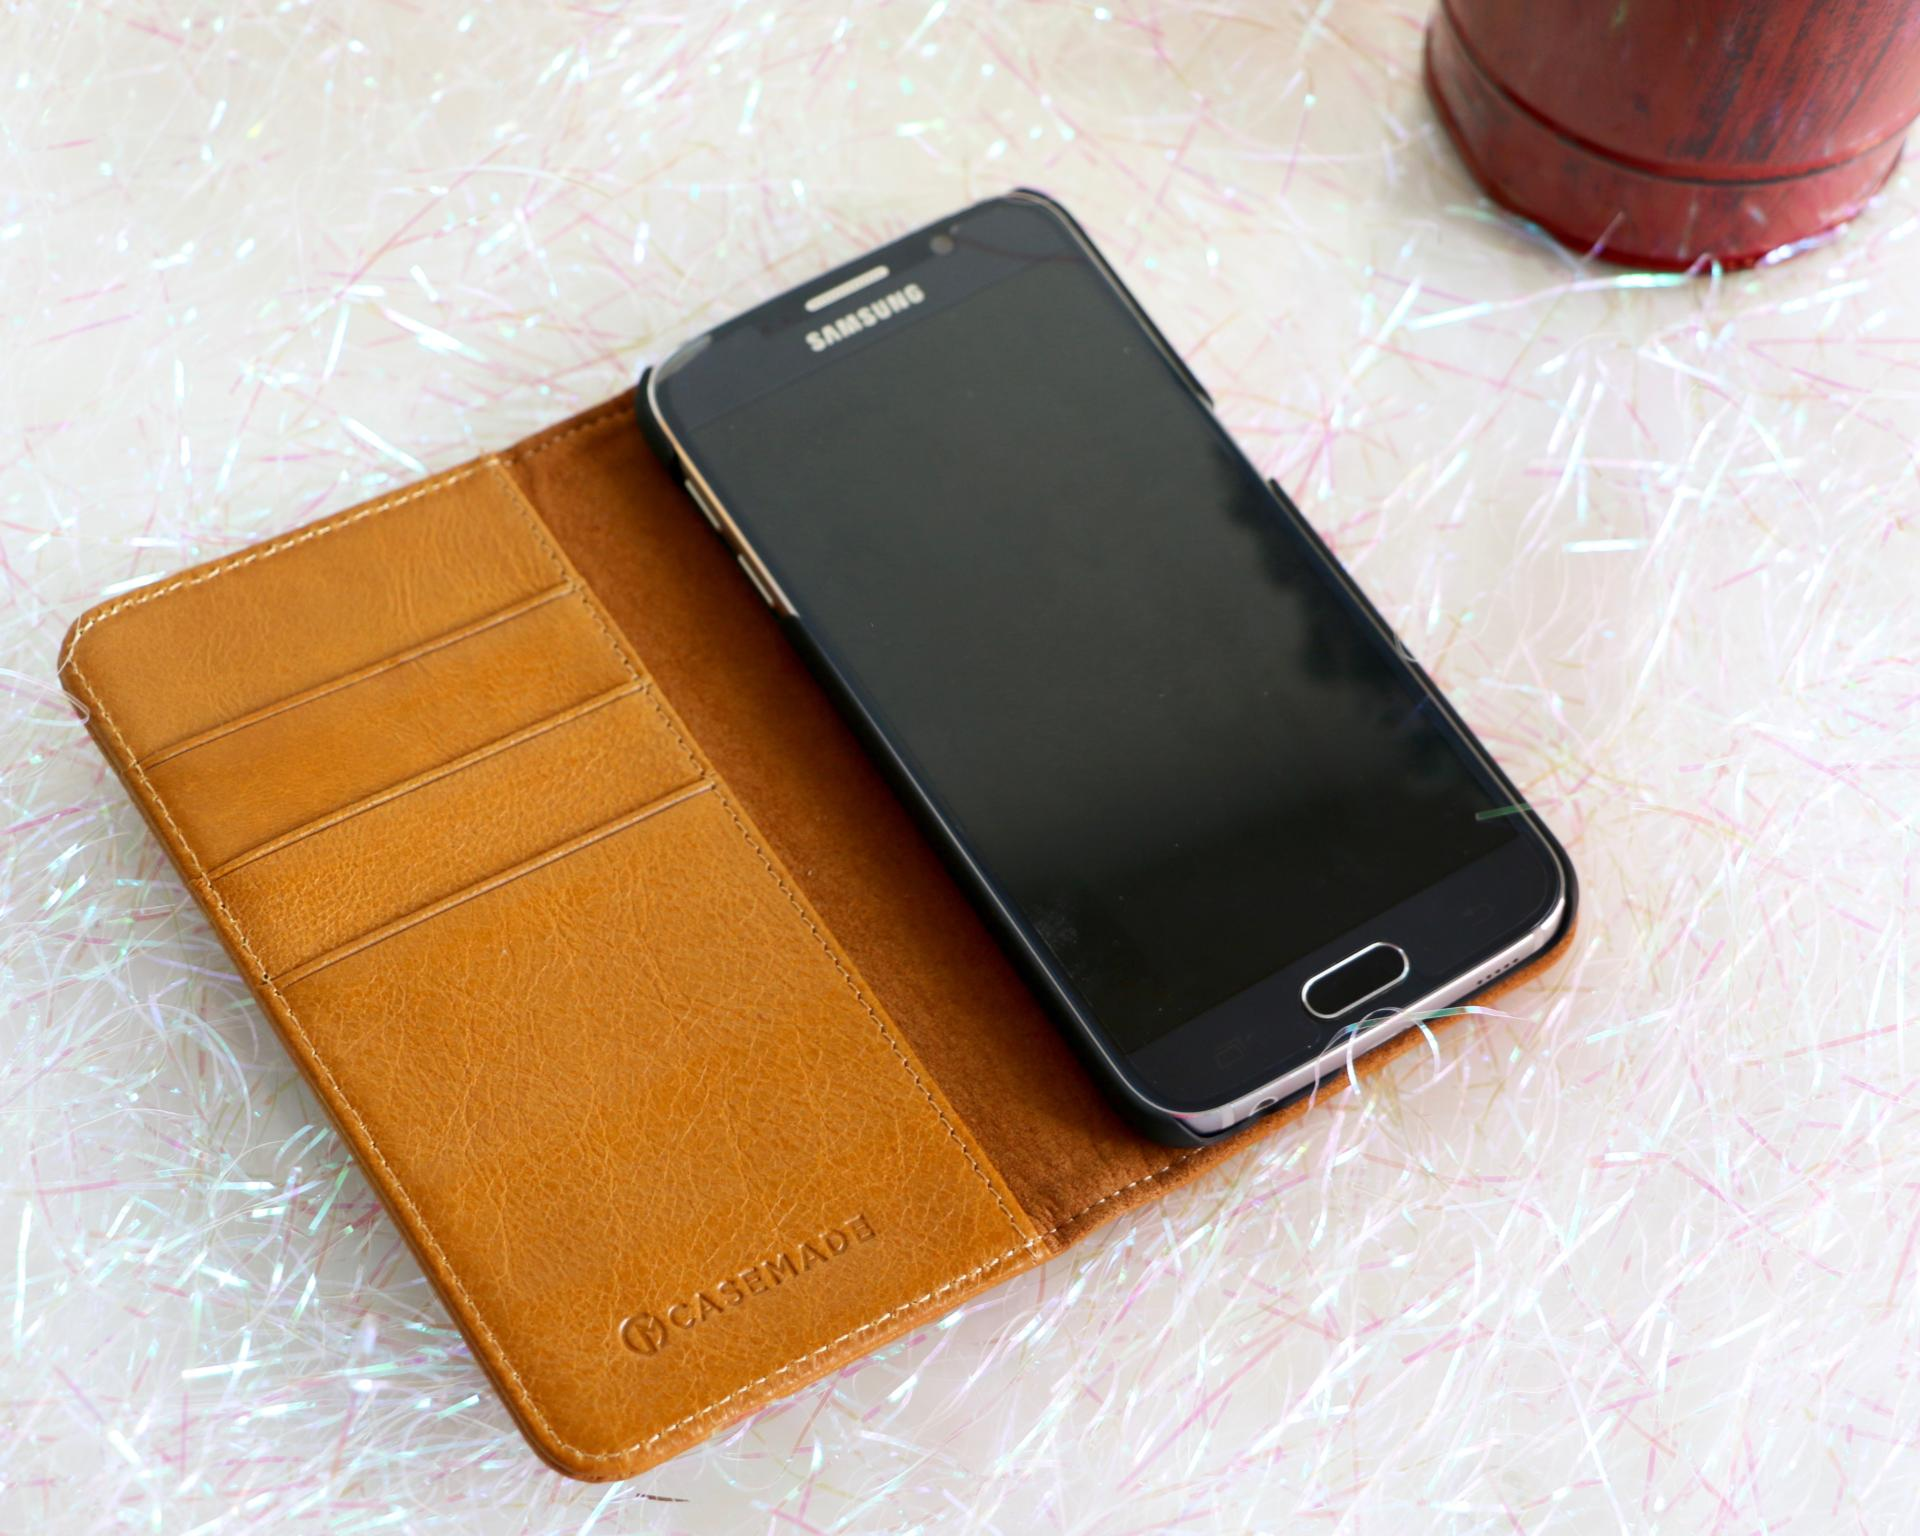 casemade-leather-phone-case-samsung-galaxy-s6